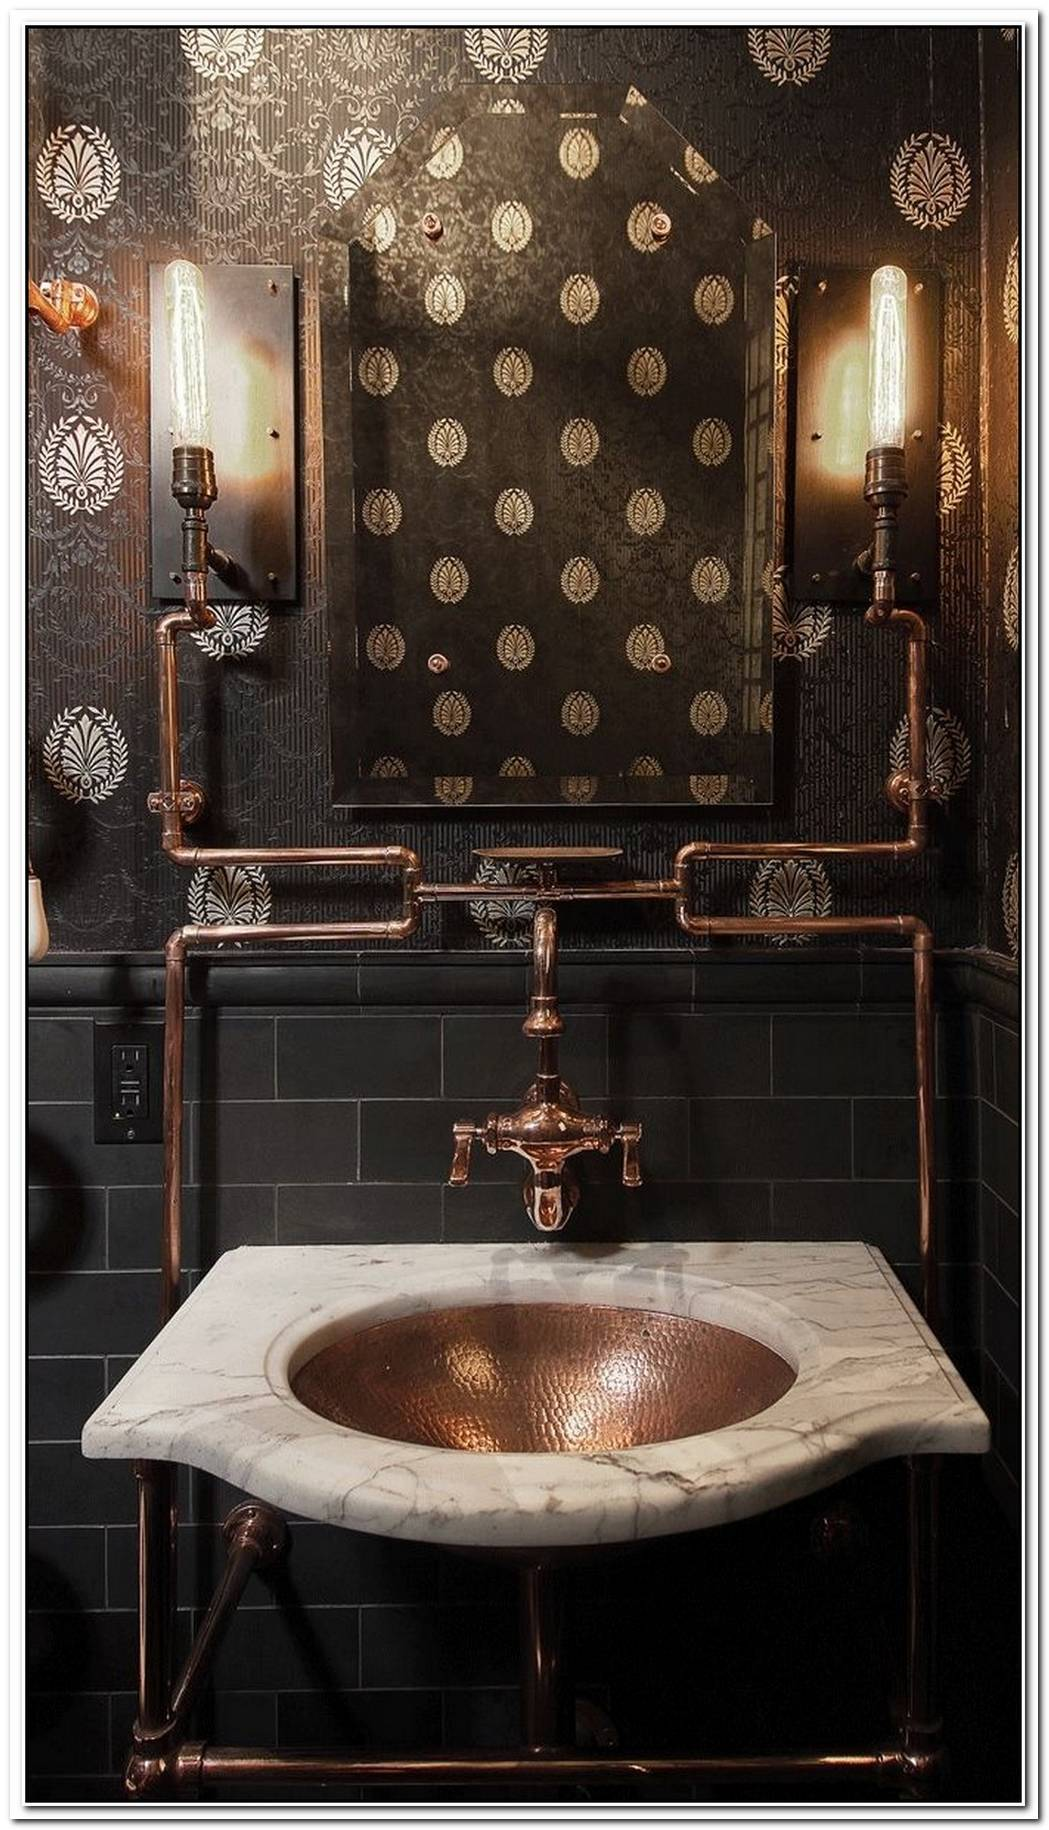 Bathroom Industrial Industrial Steampunk